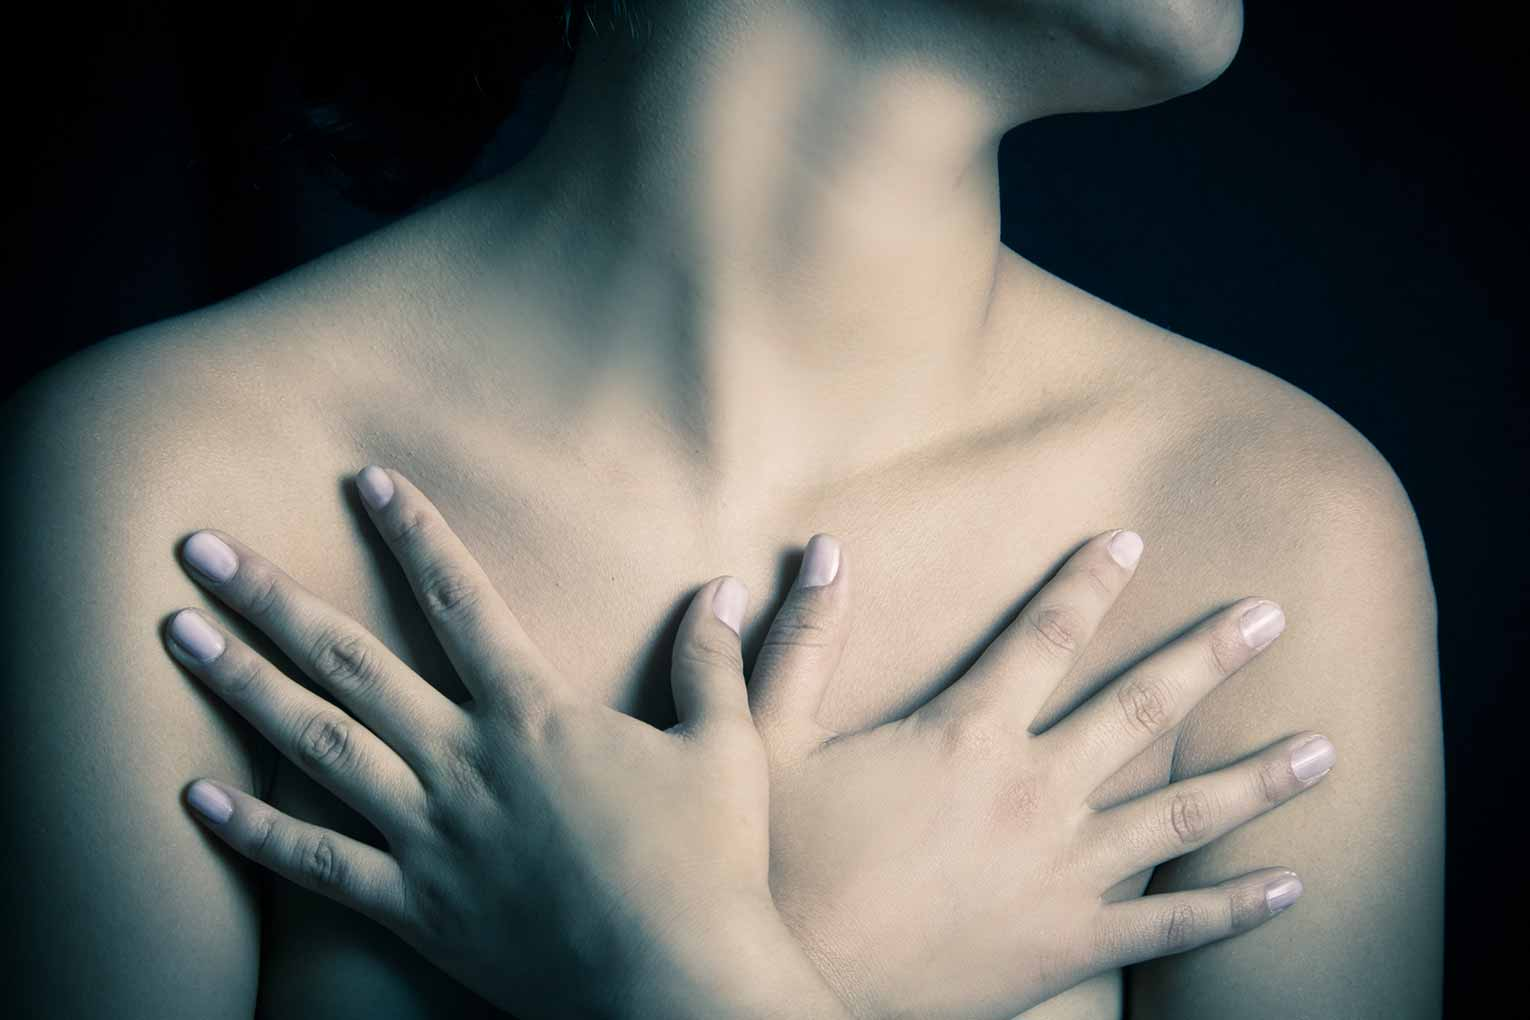 Protection importance highlighted in Breast Cancer Awareness Month